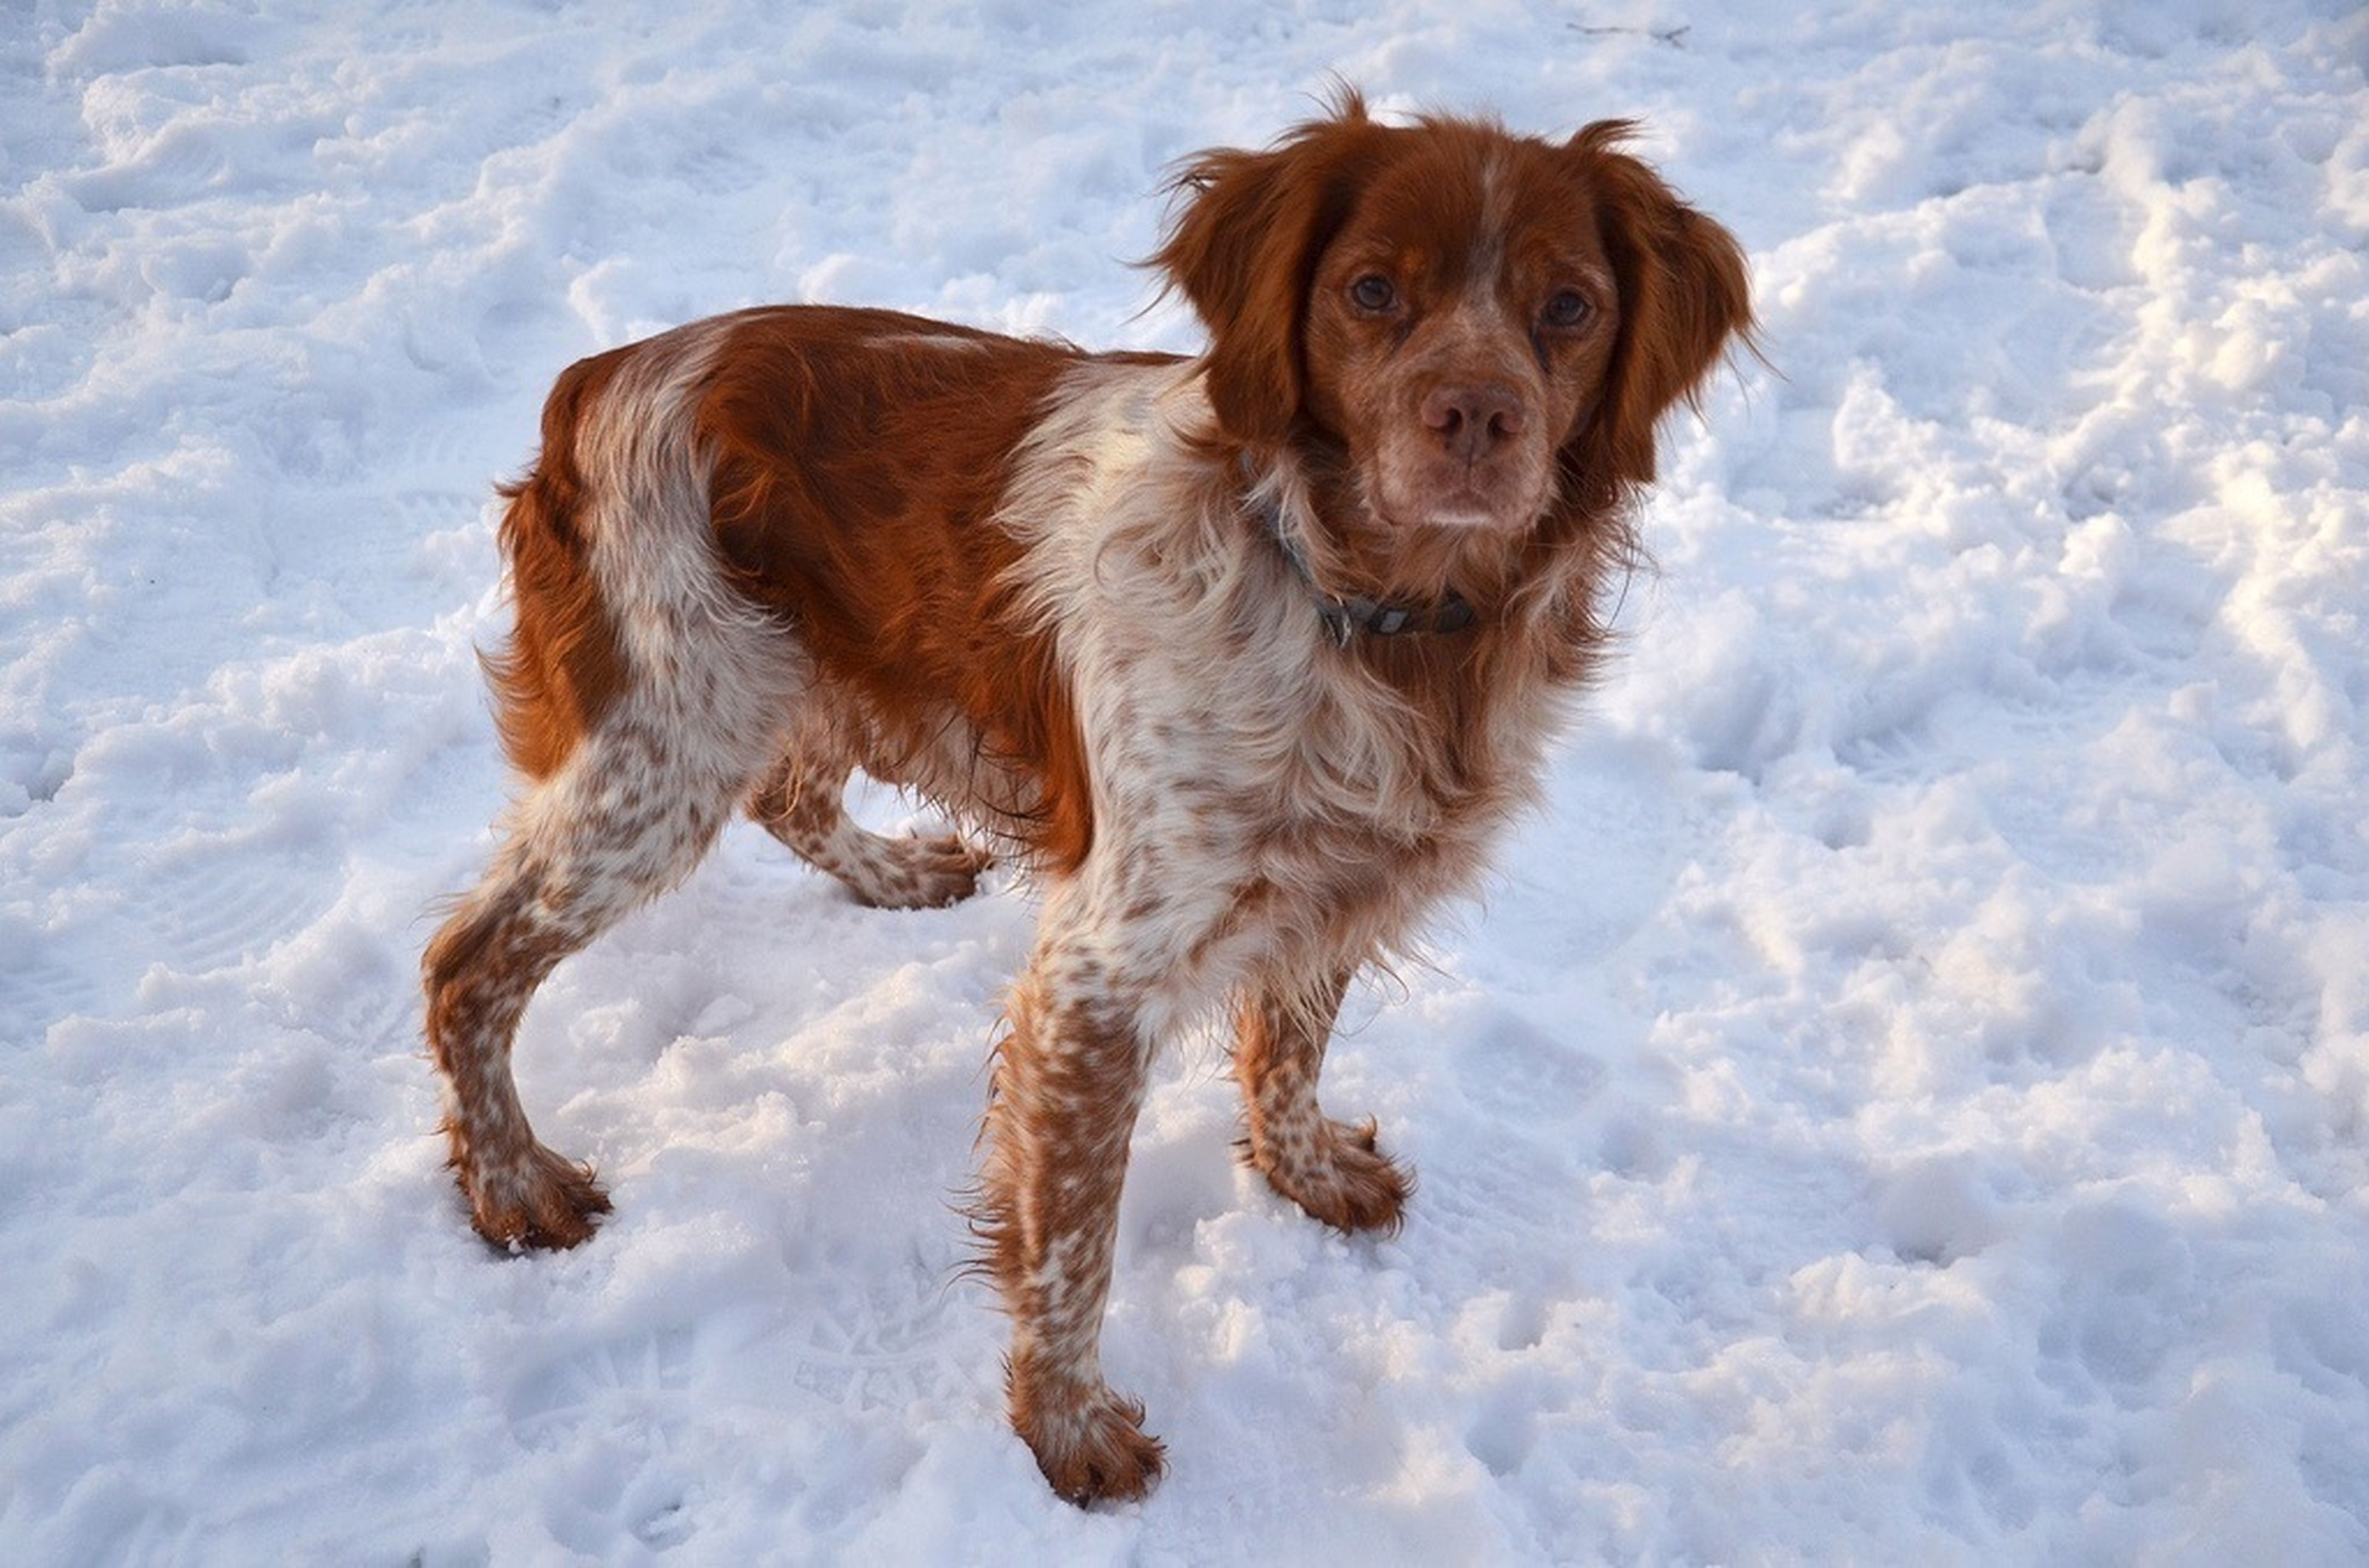 domestic animals, mammal, pets, dog, animal themes, one animal, brown, full length, pet collar, portrait, water, looking at camera, canine, day, outdoors, nature, sitting, weather, no people